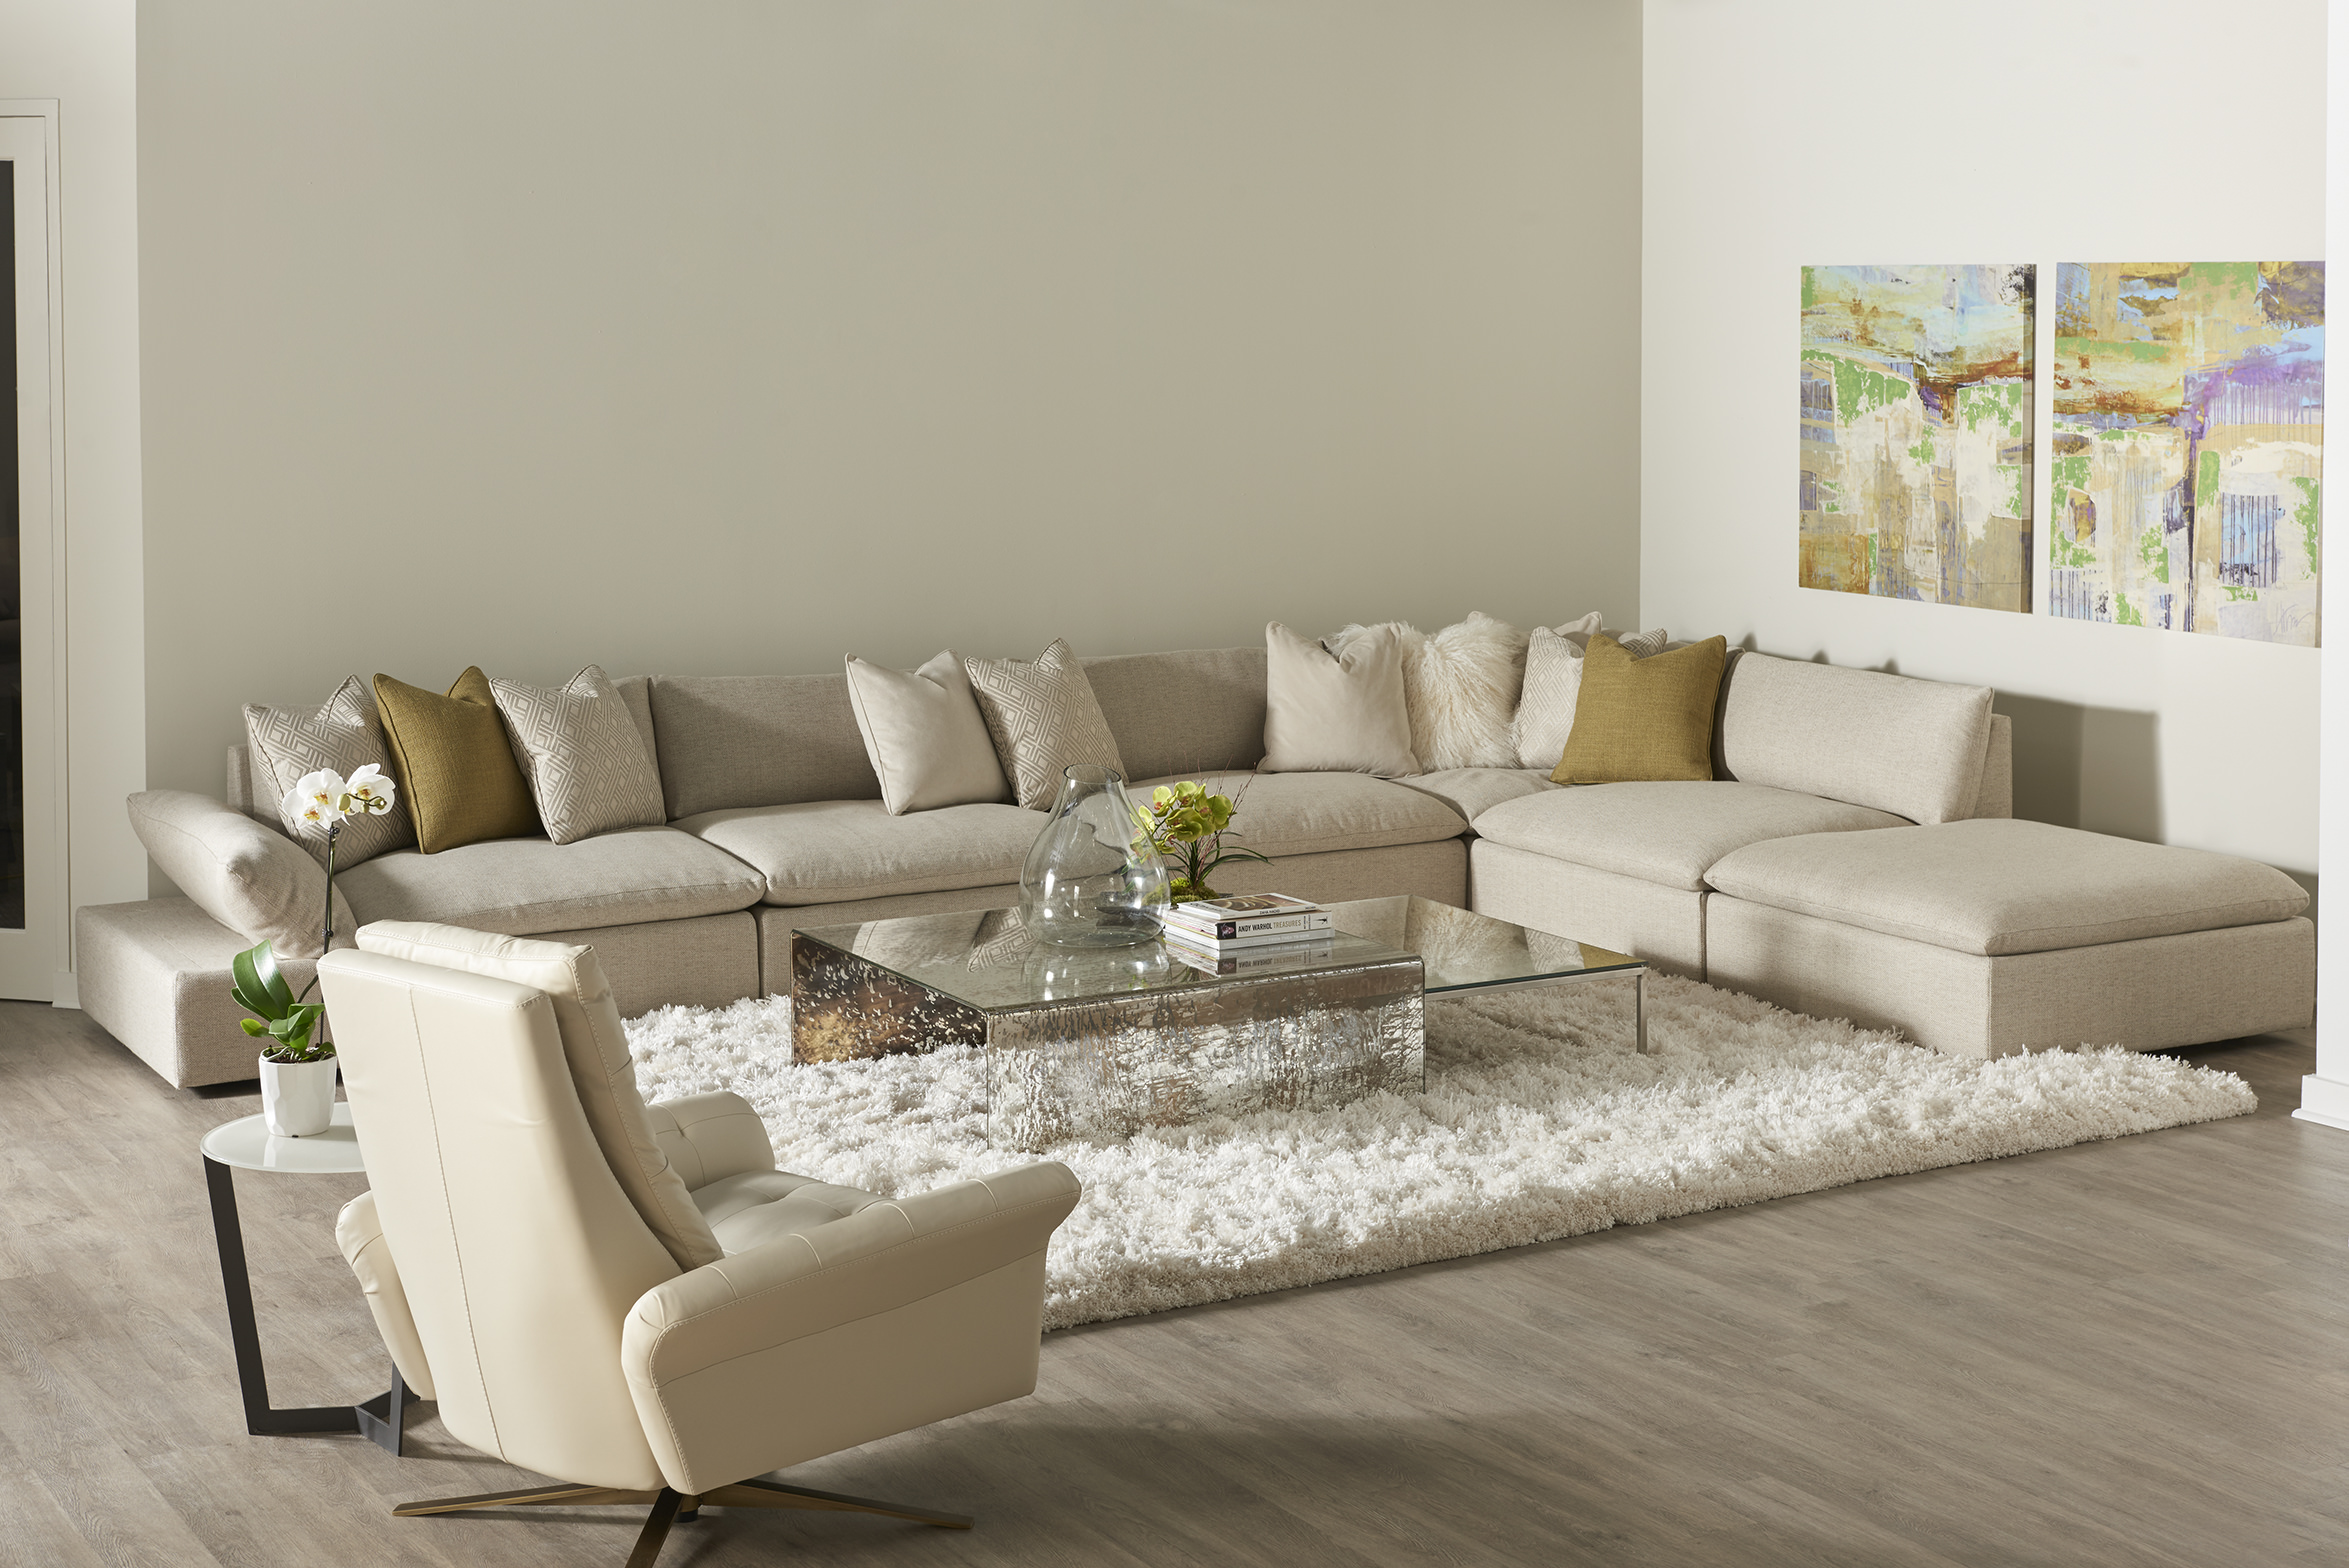 Versa Sectional with Pileus Comfort Air